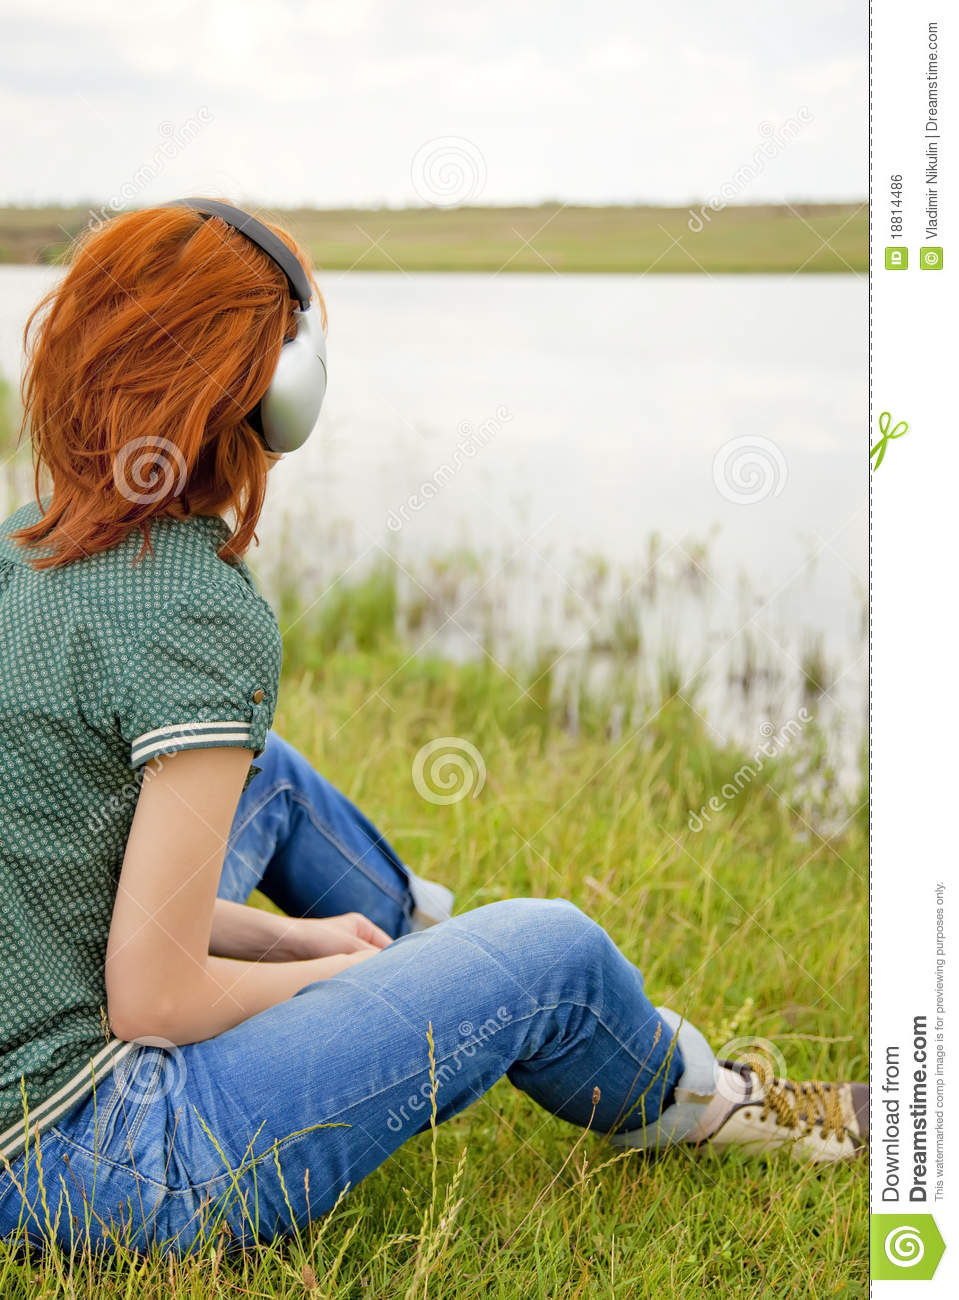 Girl with headphones at grass in spring time.